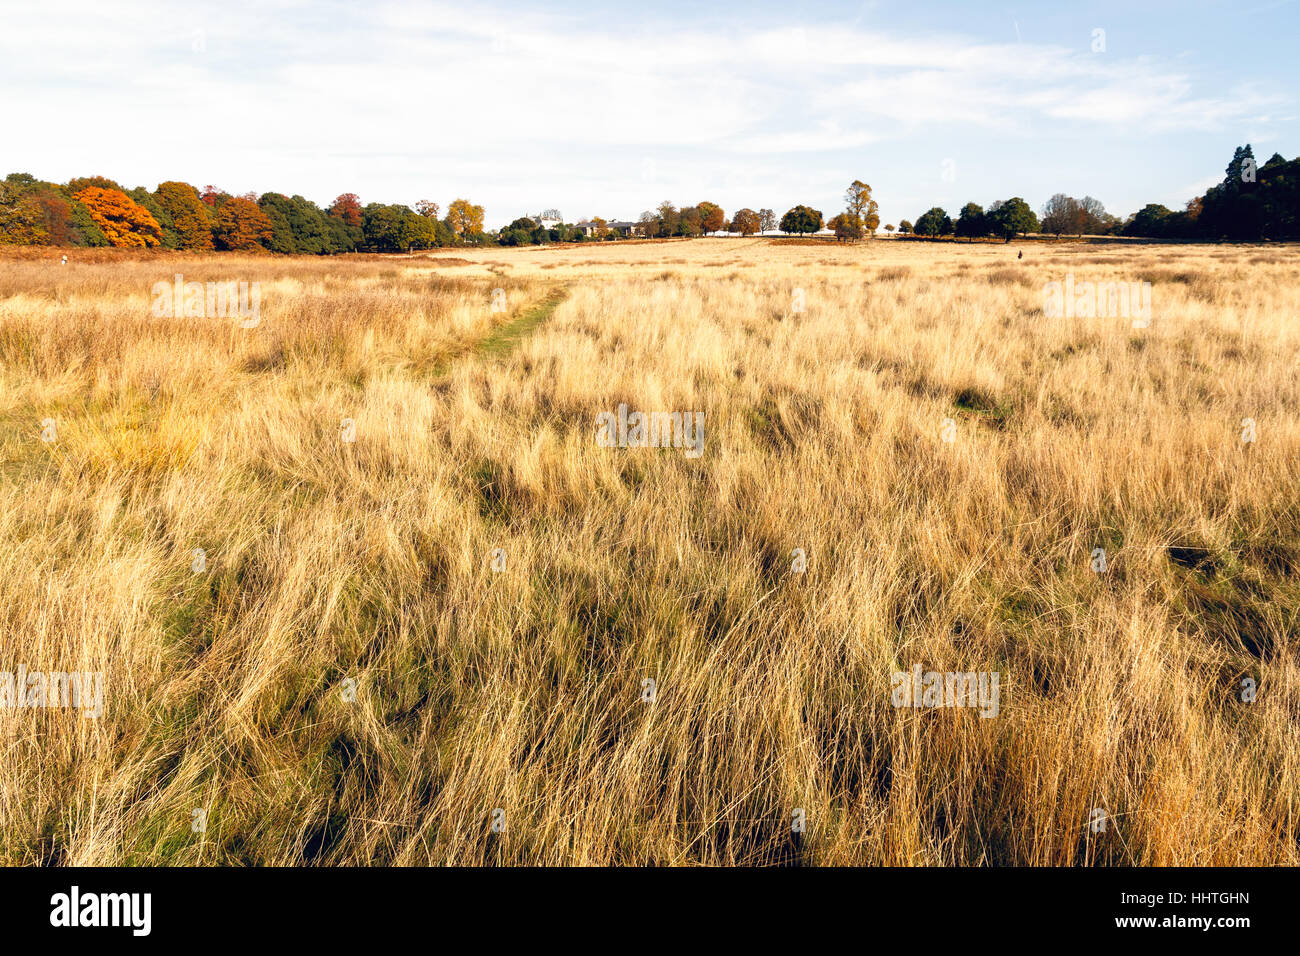 Autumn season of dry grassland in Richmond Park, London - Stock Image